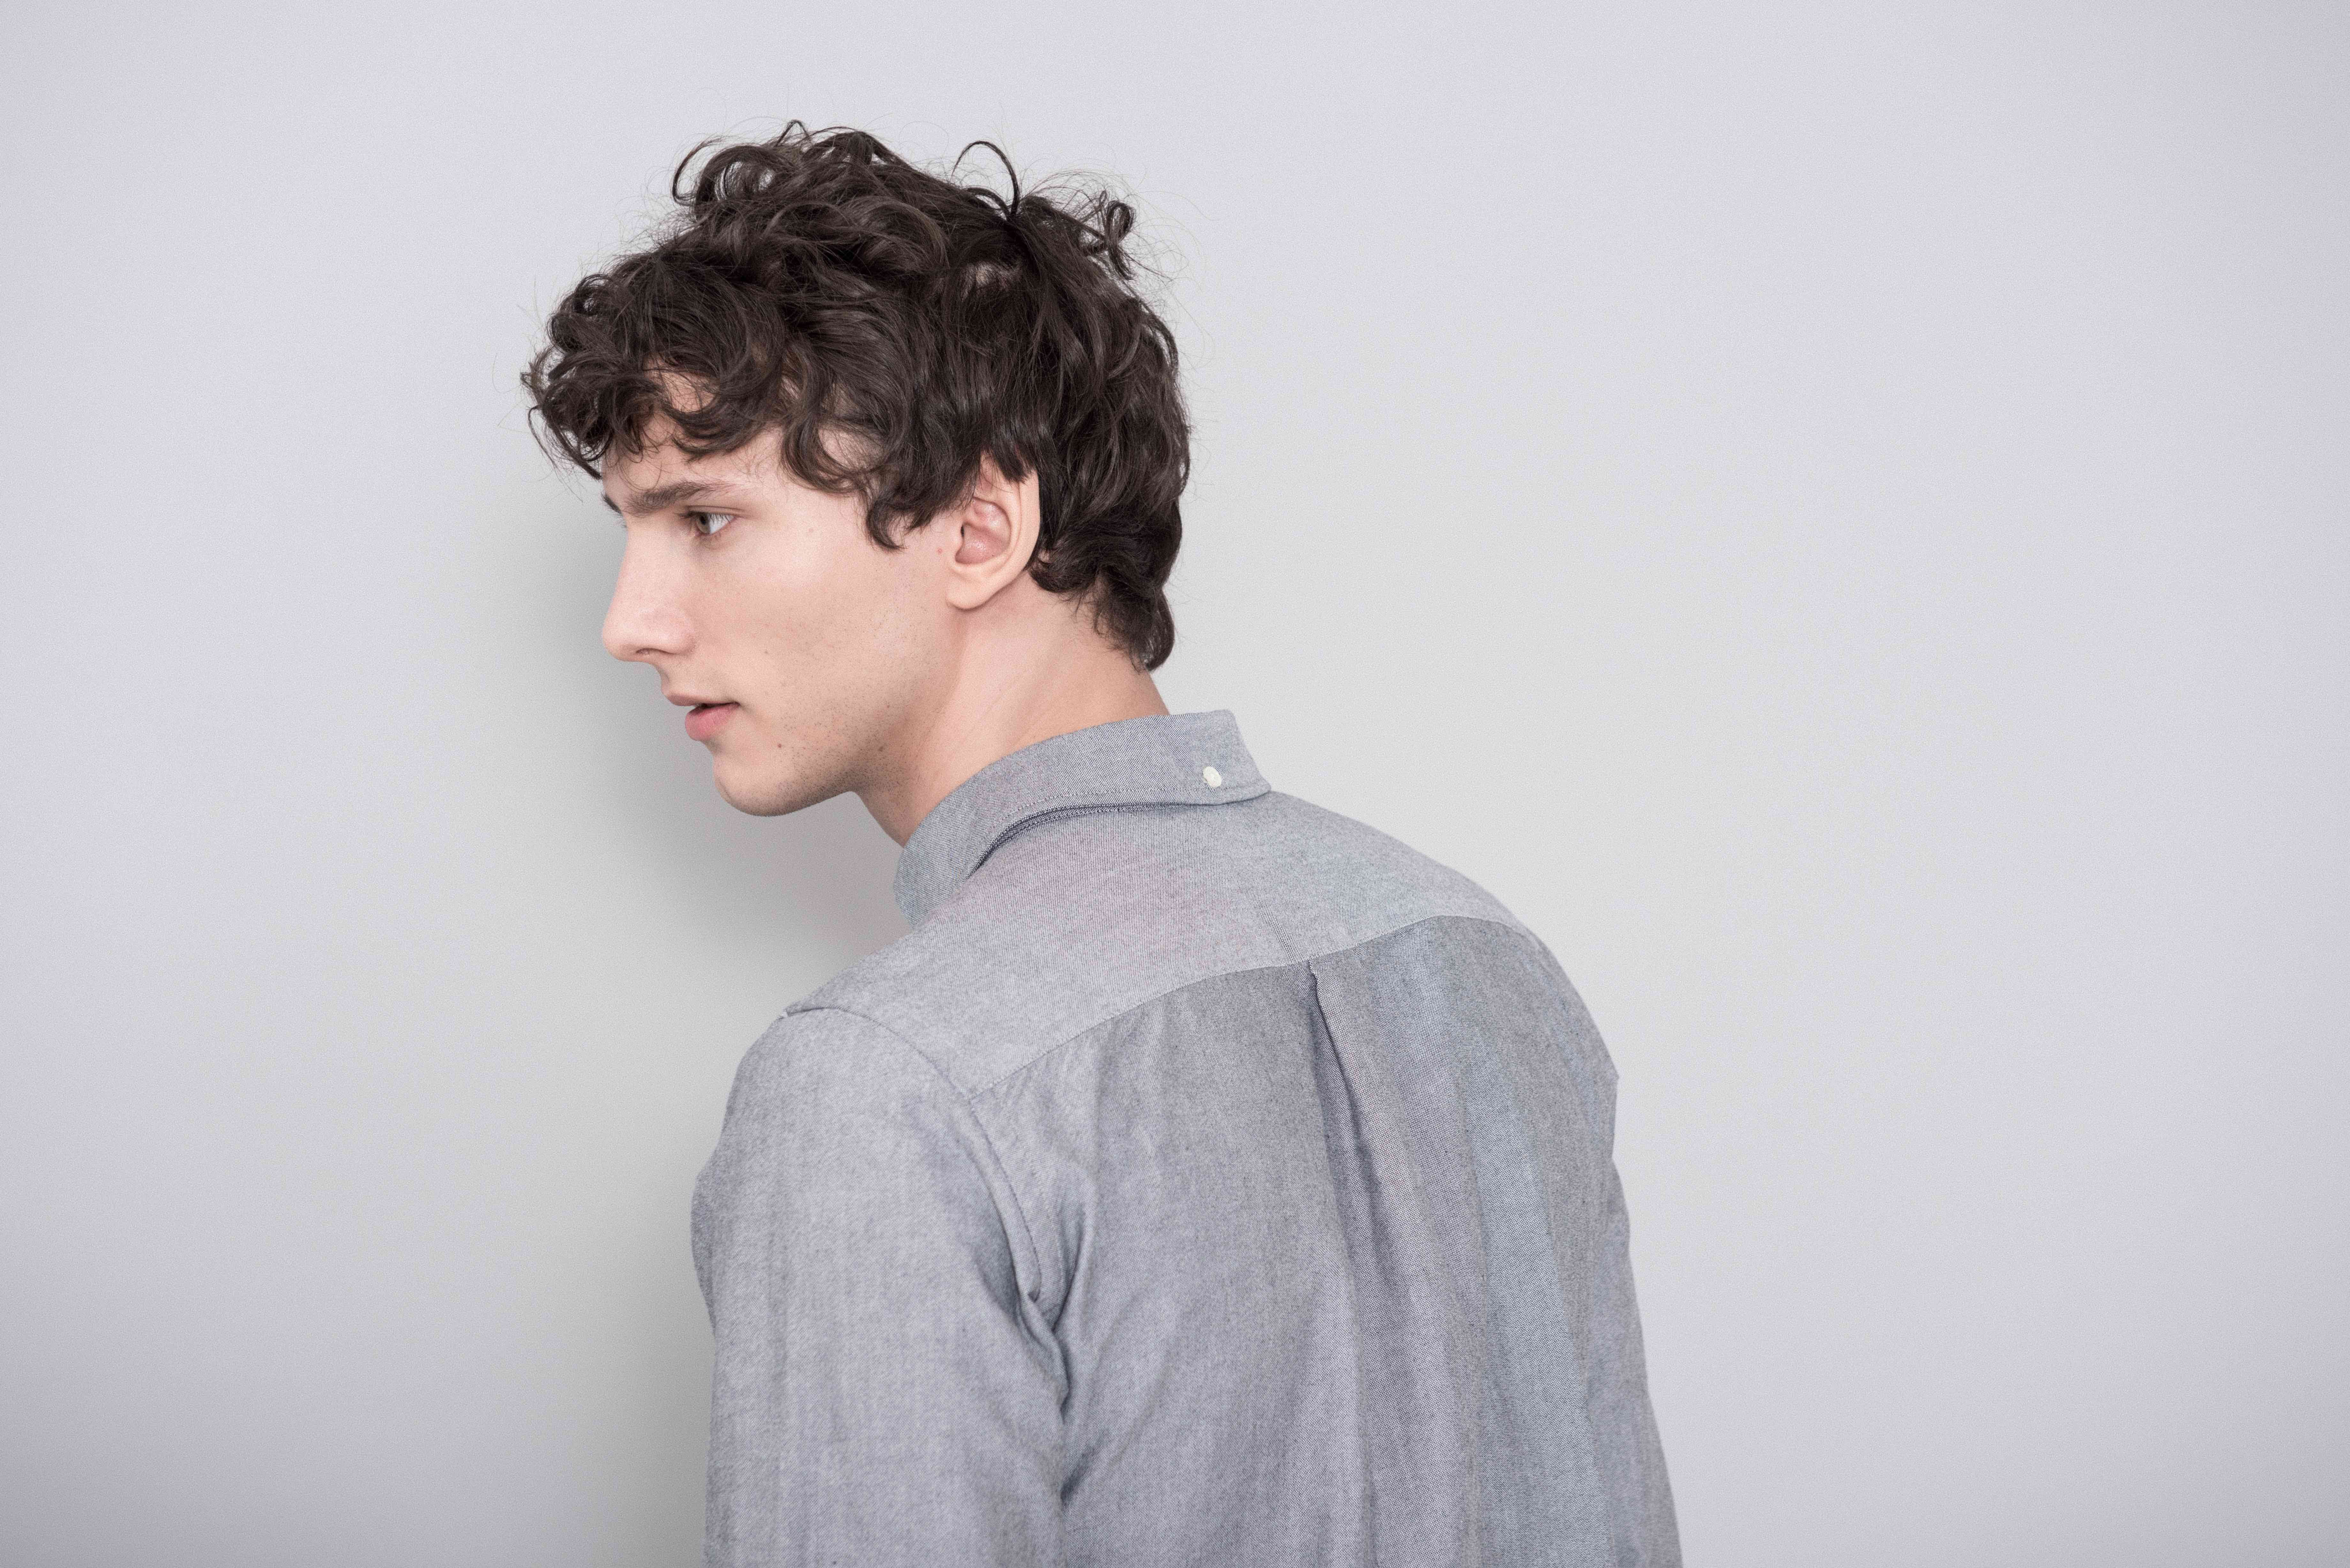 d90771d45d2 The Asket Oxford Shirt in Grey